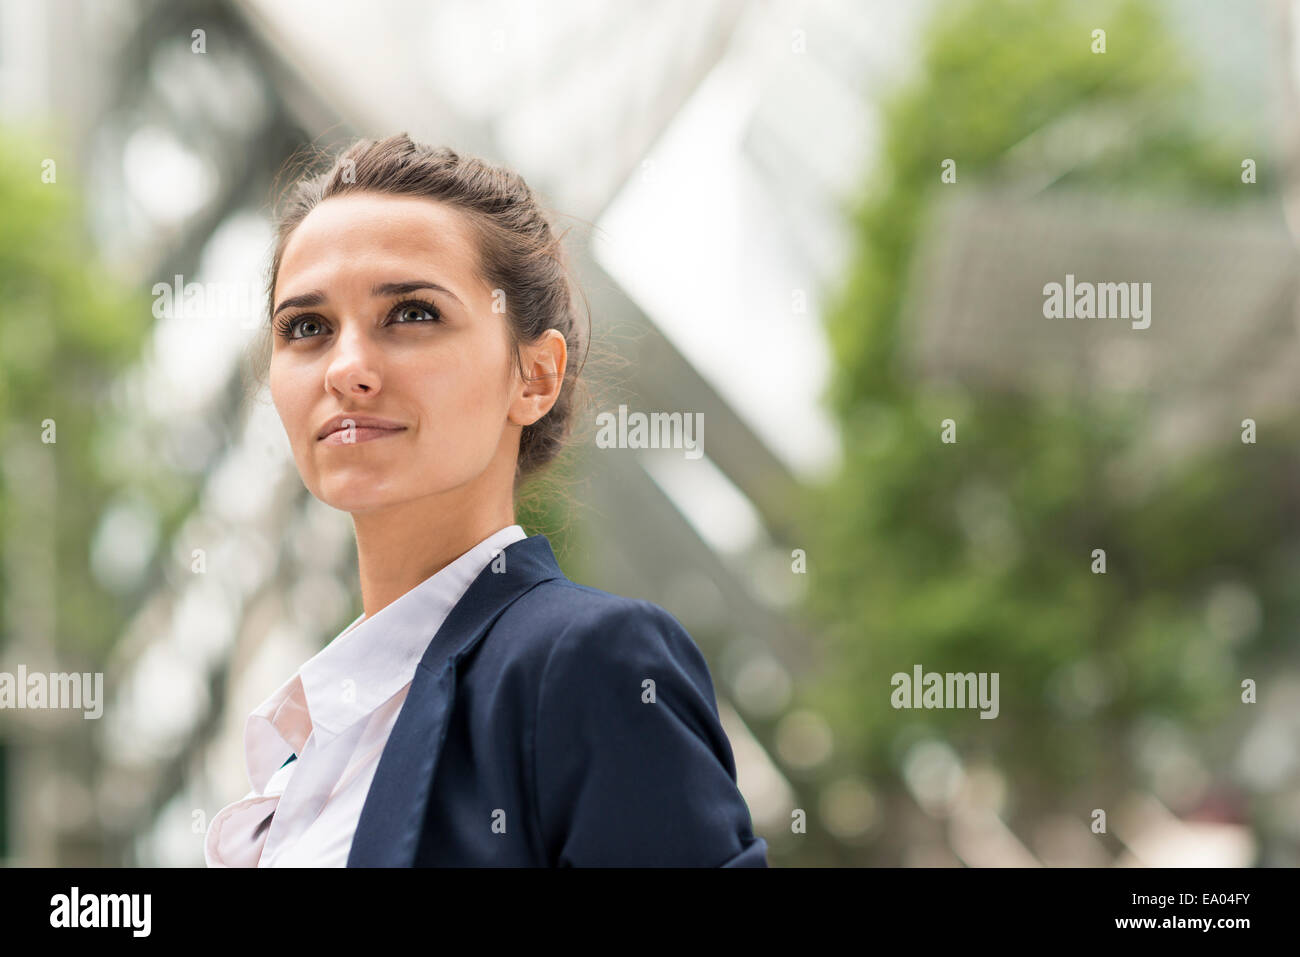 Confident businesswoman at Broadgate Tower, London, UK - Stock Image